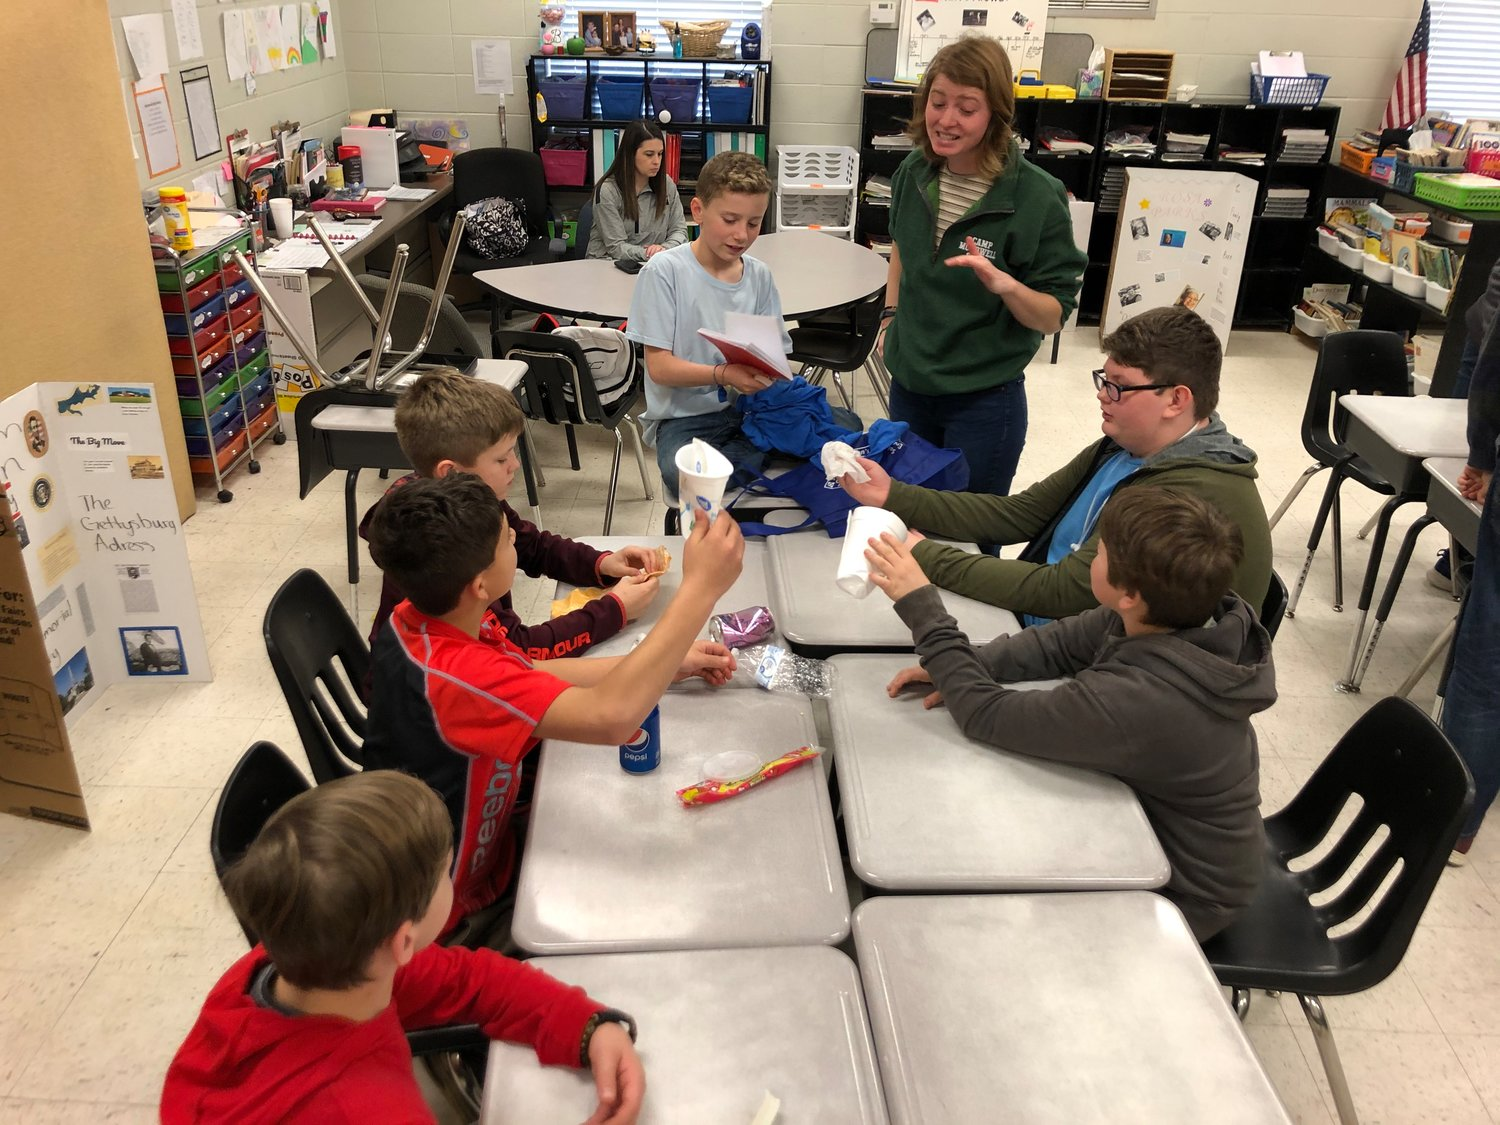 Hannah Borgerson, the lead instructor and outreach director for Camp McDowell, oversees an activity with Meek students. Camp McDowell instructors have taught a recycling curriculum in Meek schools for two years.